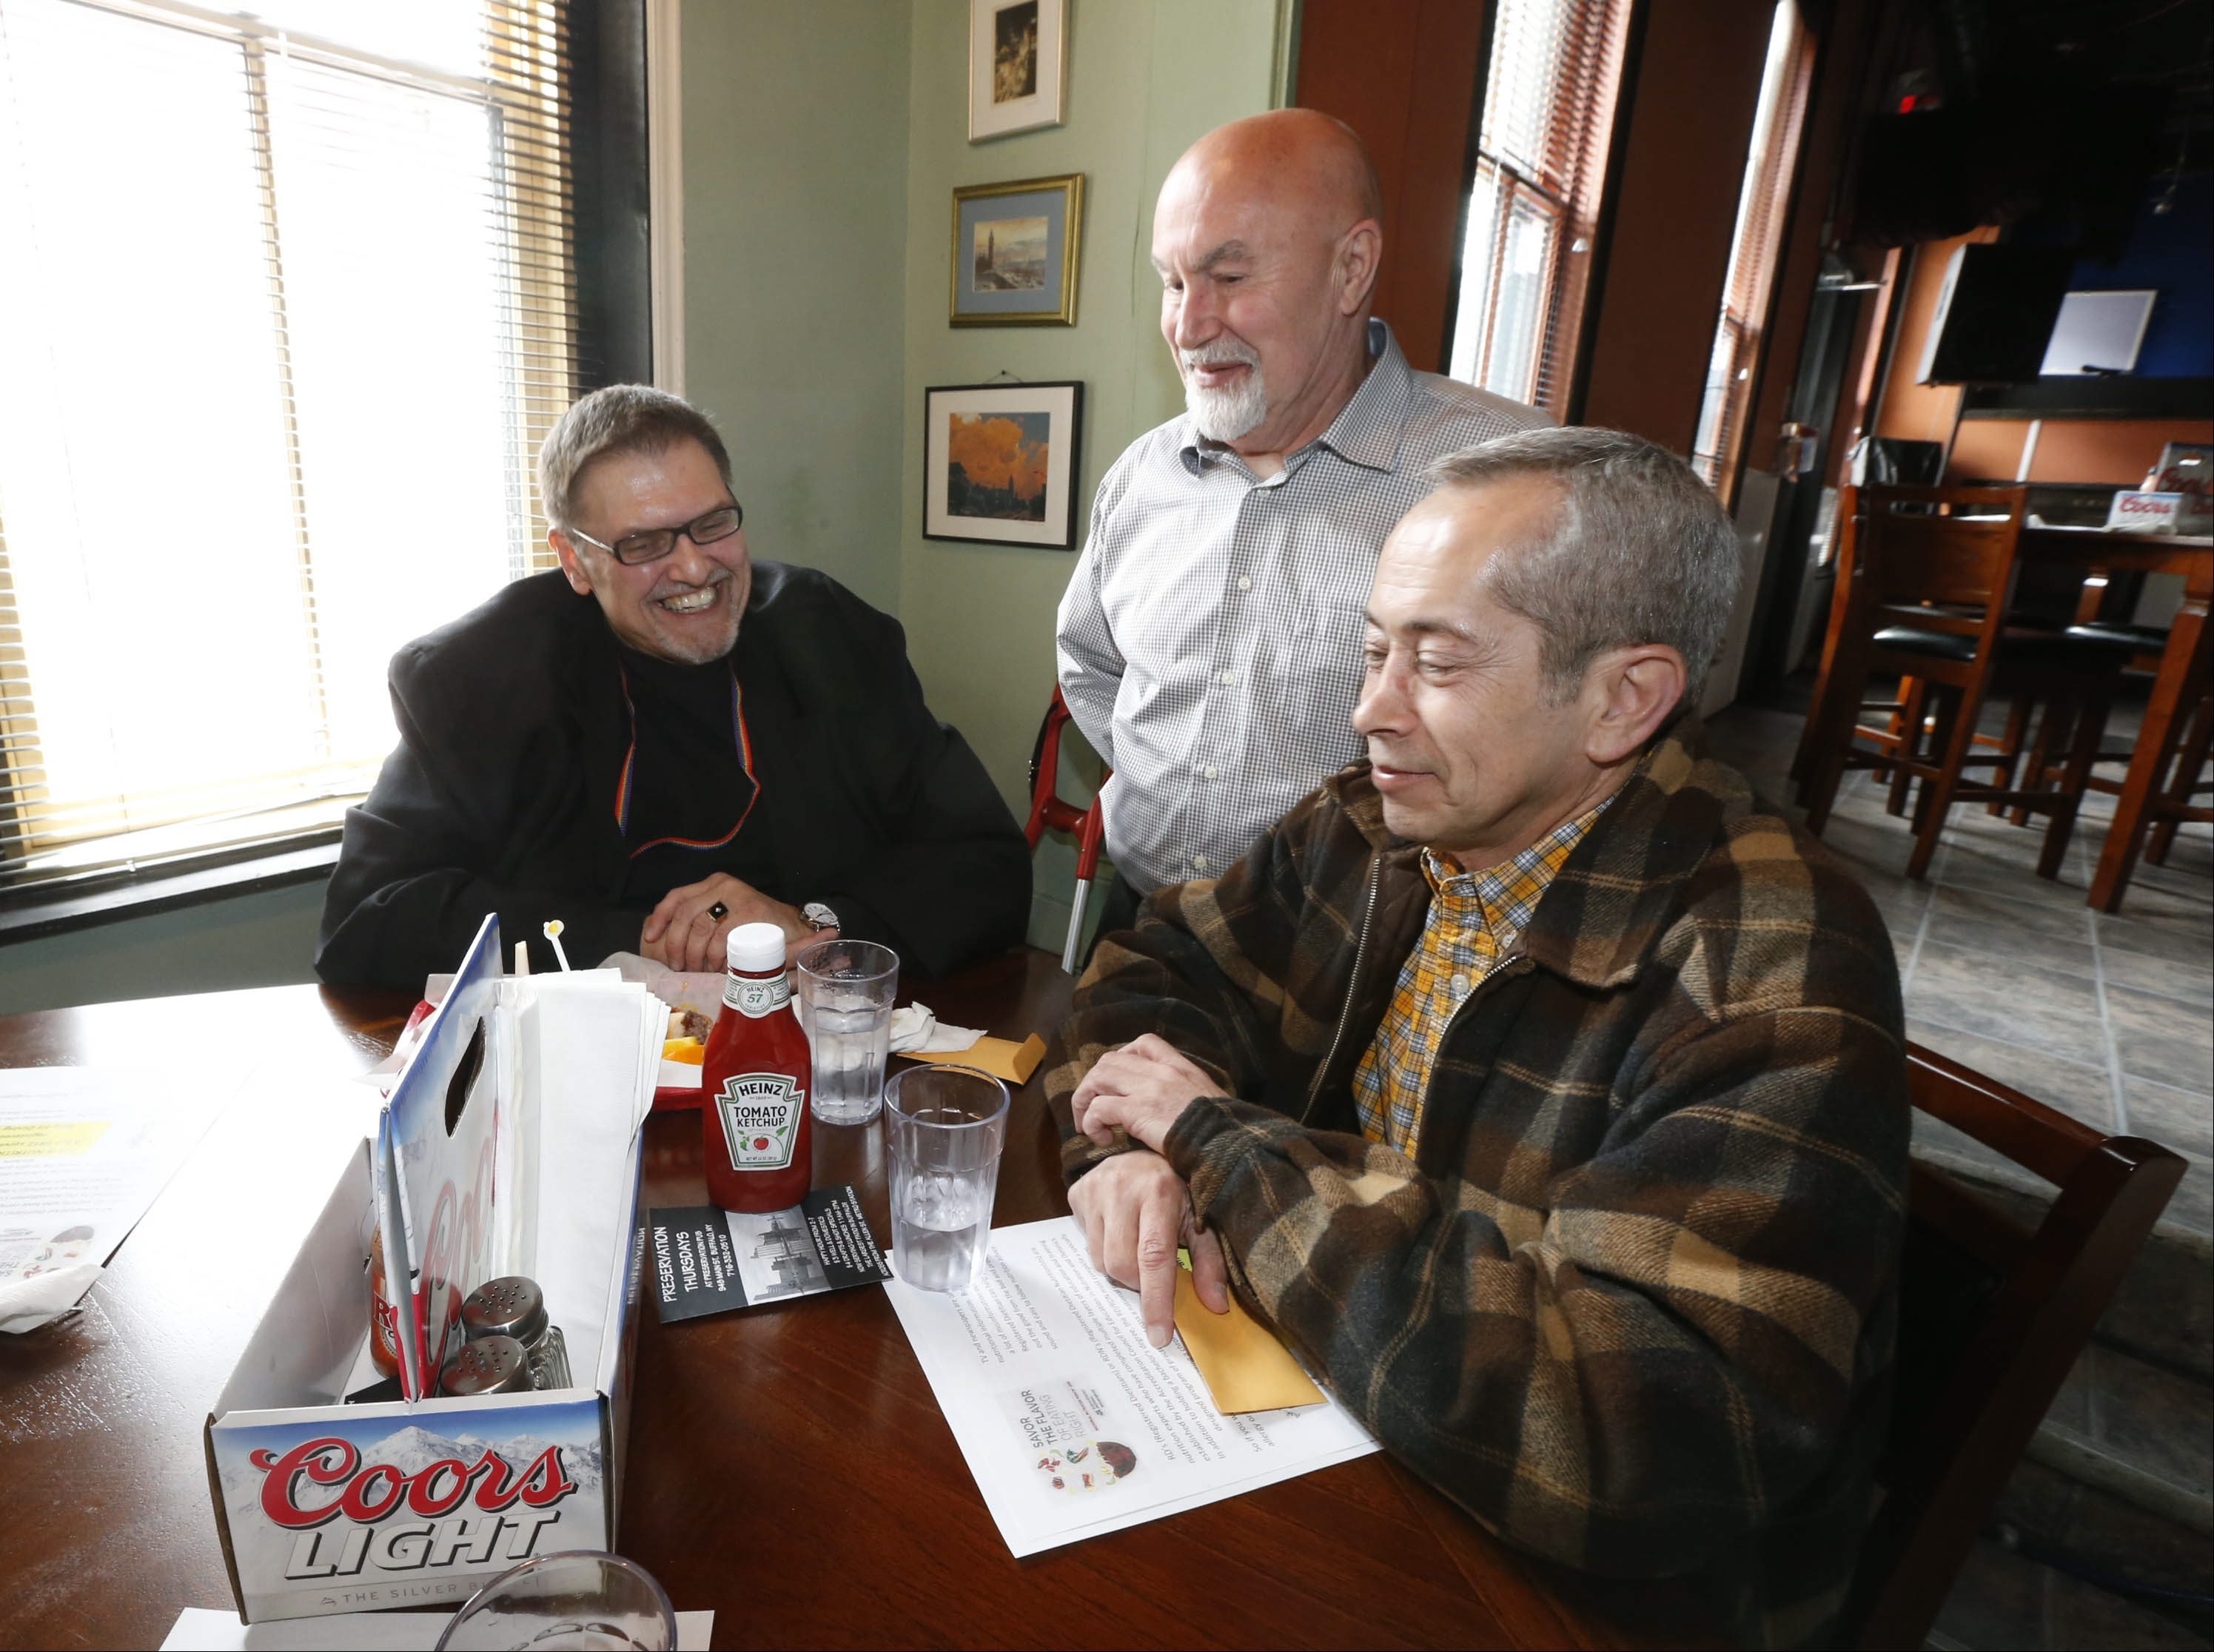 Erie County Department of Senior Services hosts a monthly senior lunch program at Preservation Pub on Main Street. (Robert Kirkham/Buffalo News file photo)